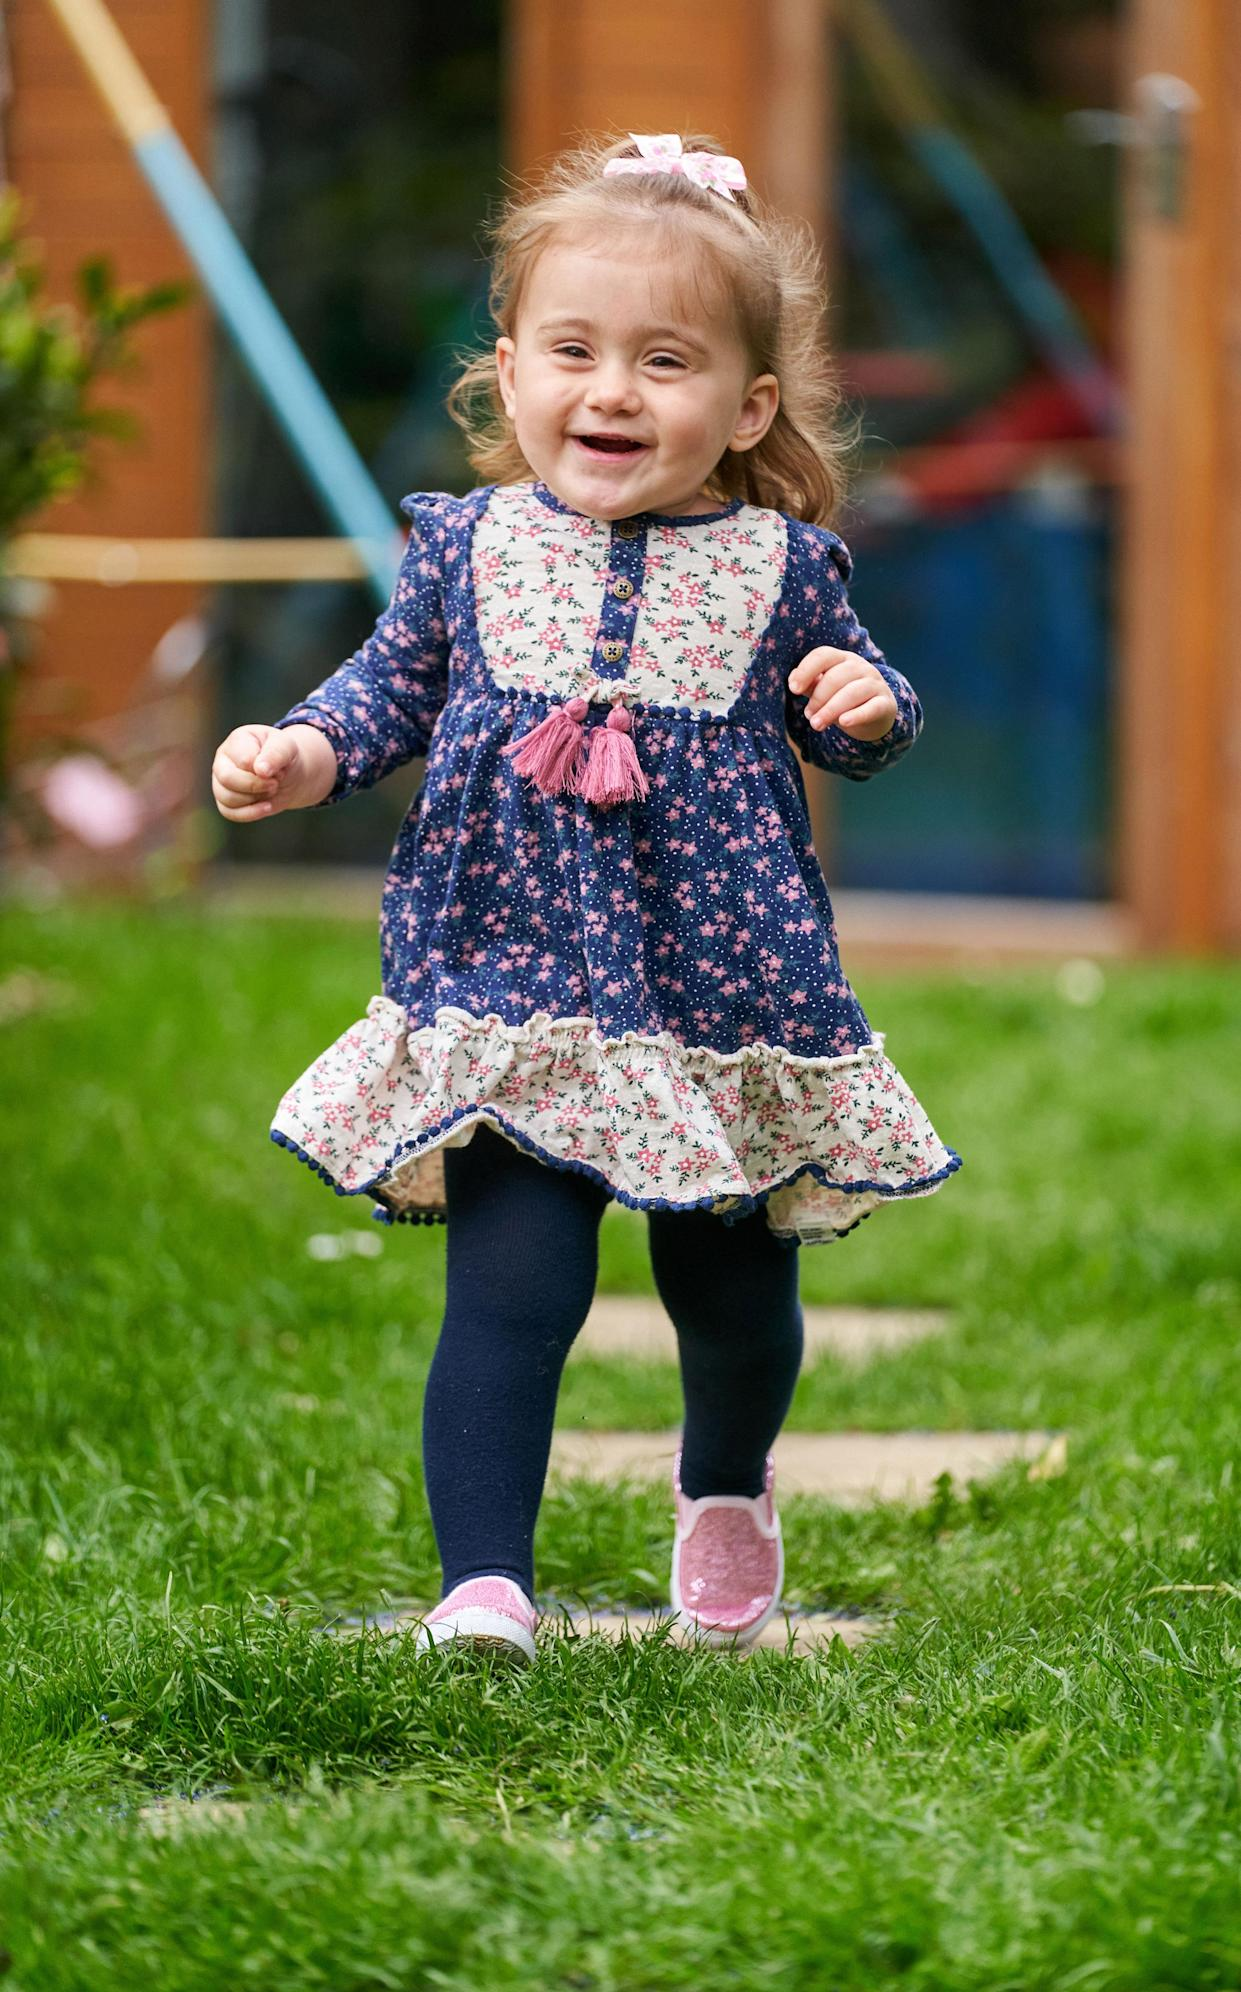 Eloise has defied odds by being able to run, walk and even climb. (Caters)